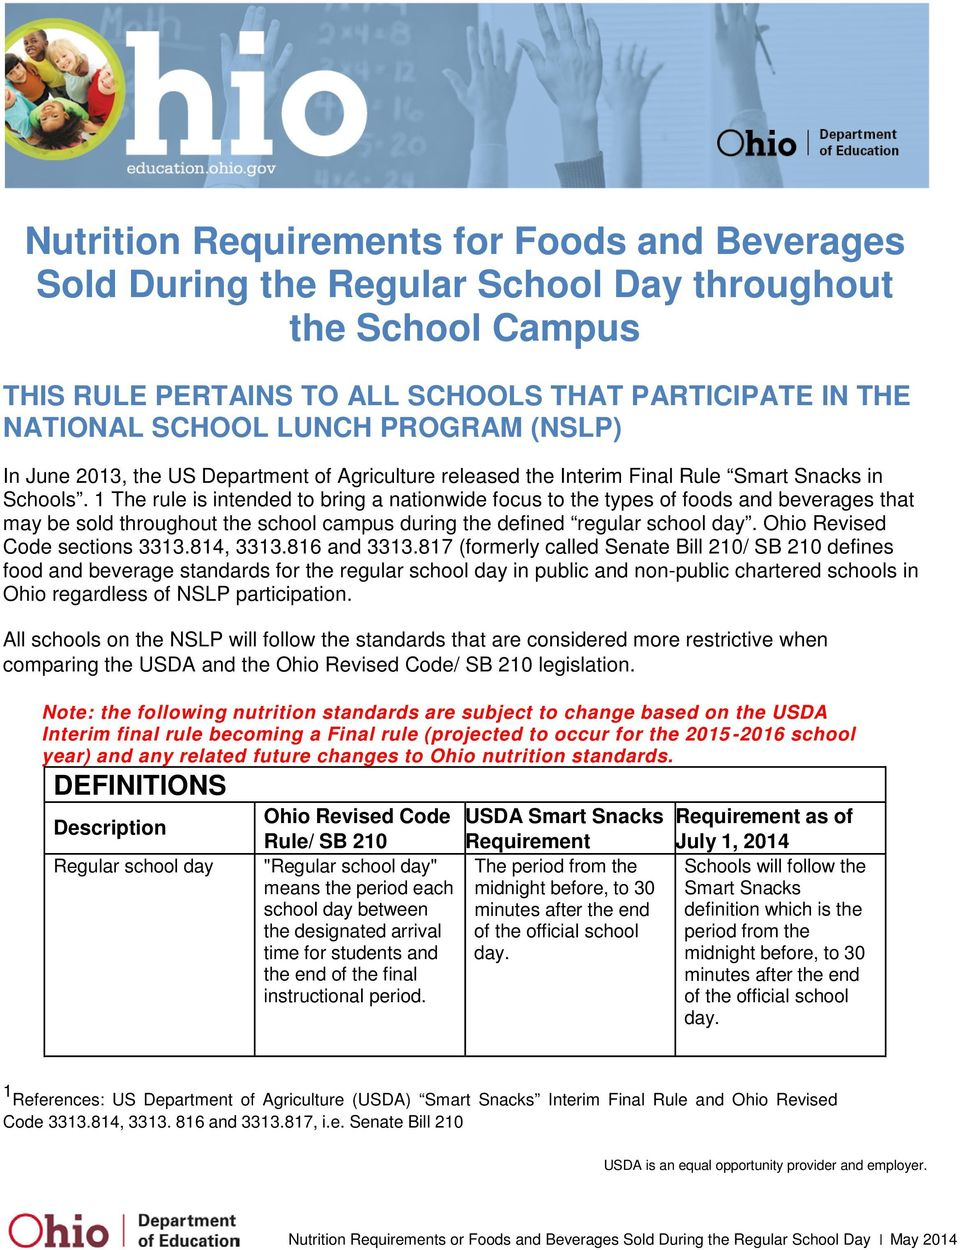 1 The rule is intended to bring a nationwide focus to the types of foods and beverages that may be sold throughout the school campus during the defined regular school day.